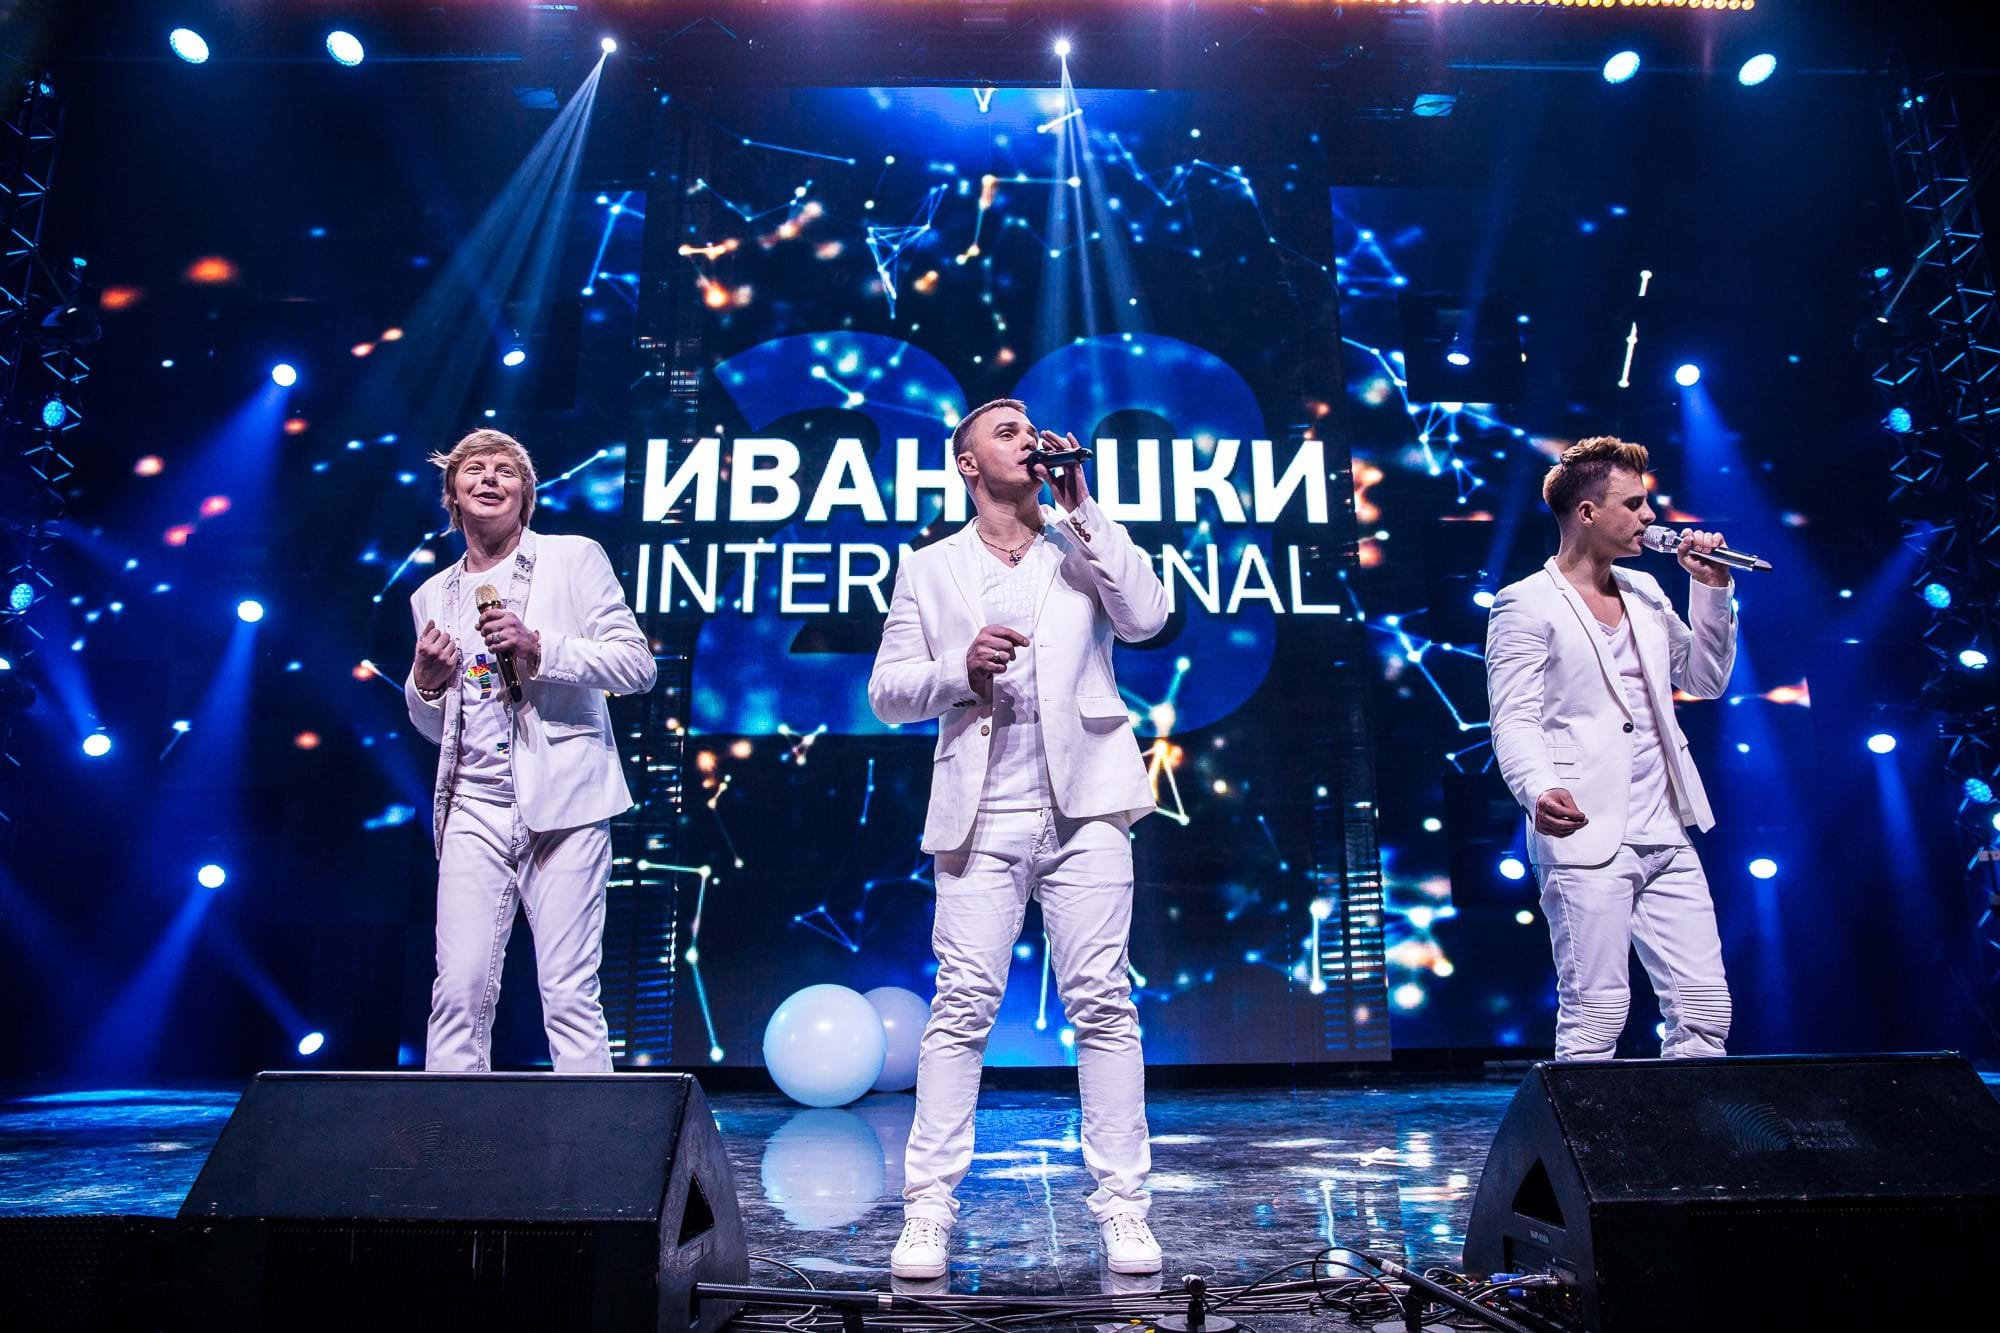 2015.11.27 - Иванушки International - Crocus City Hall